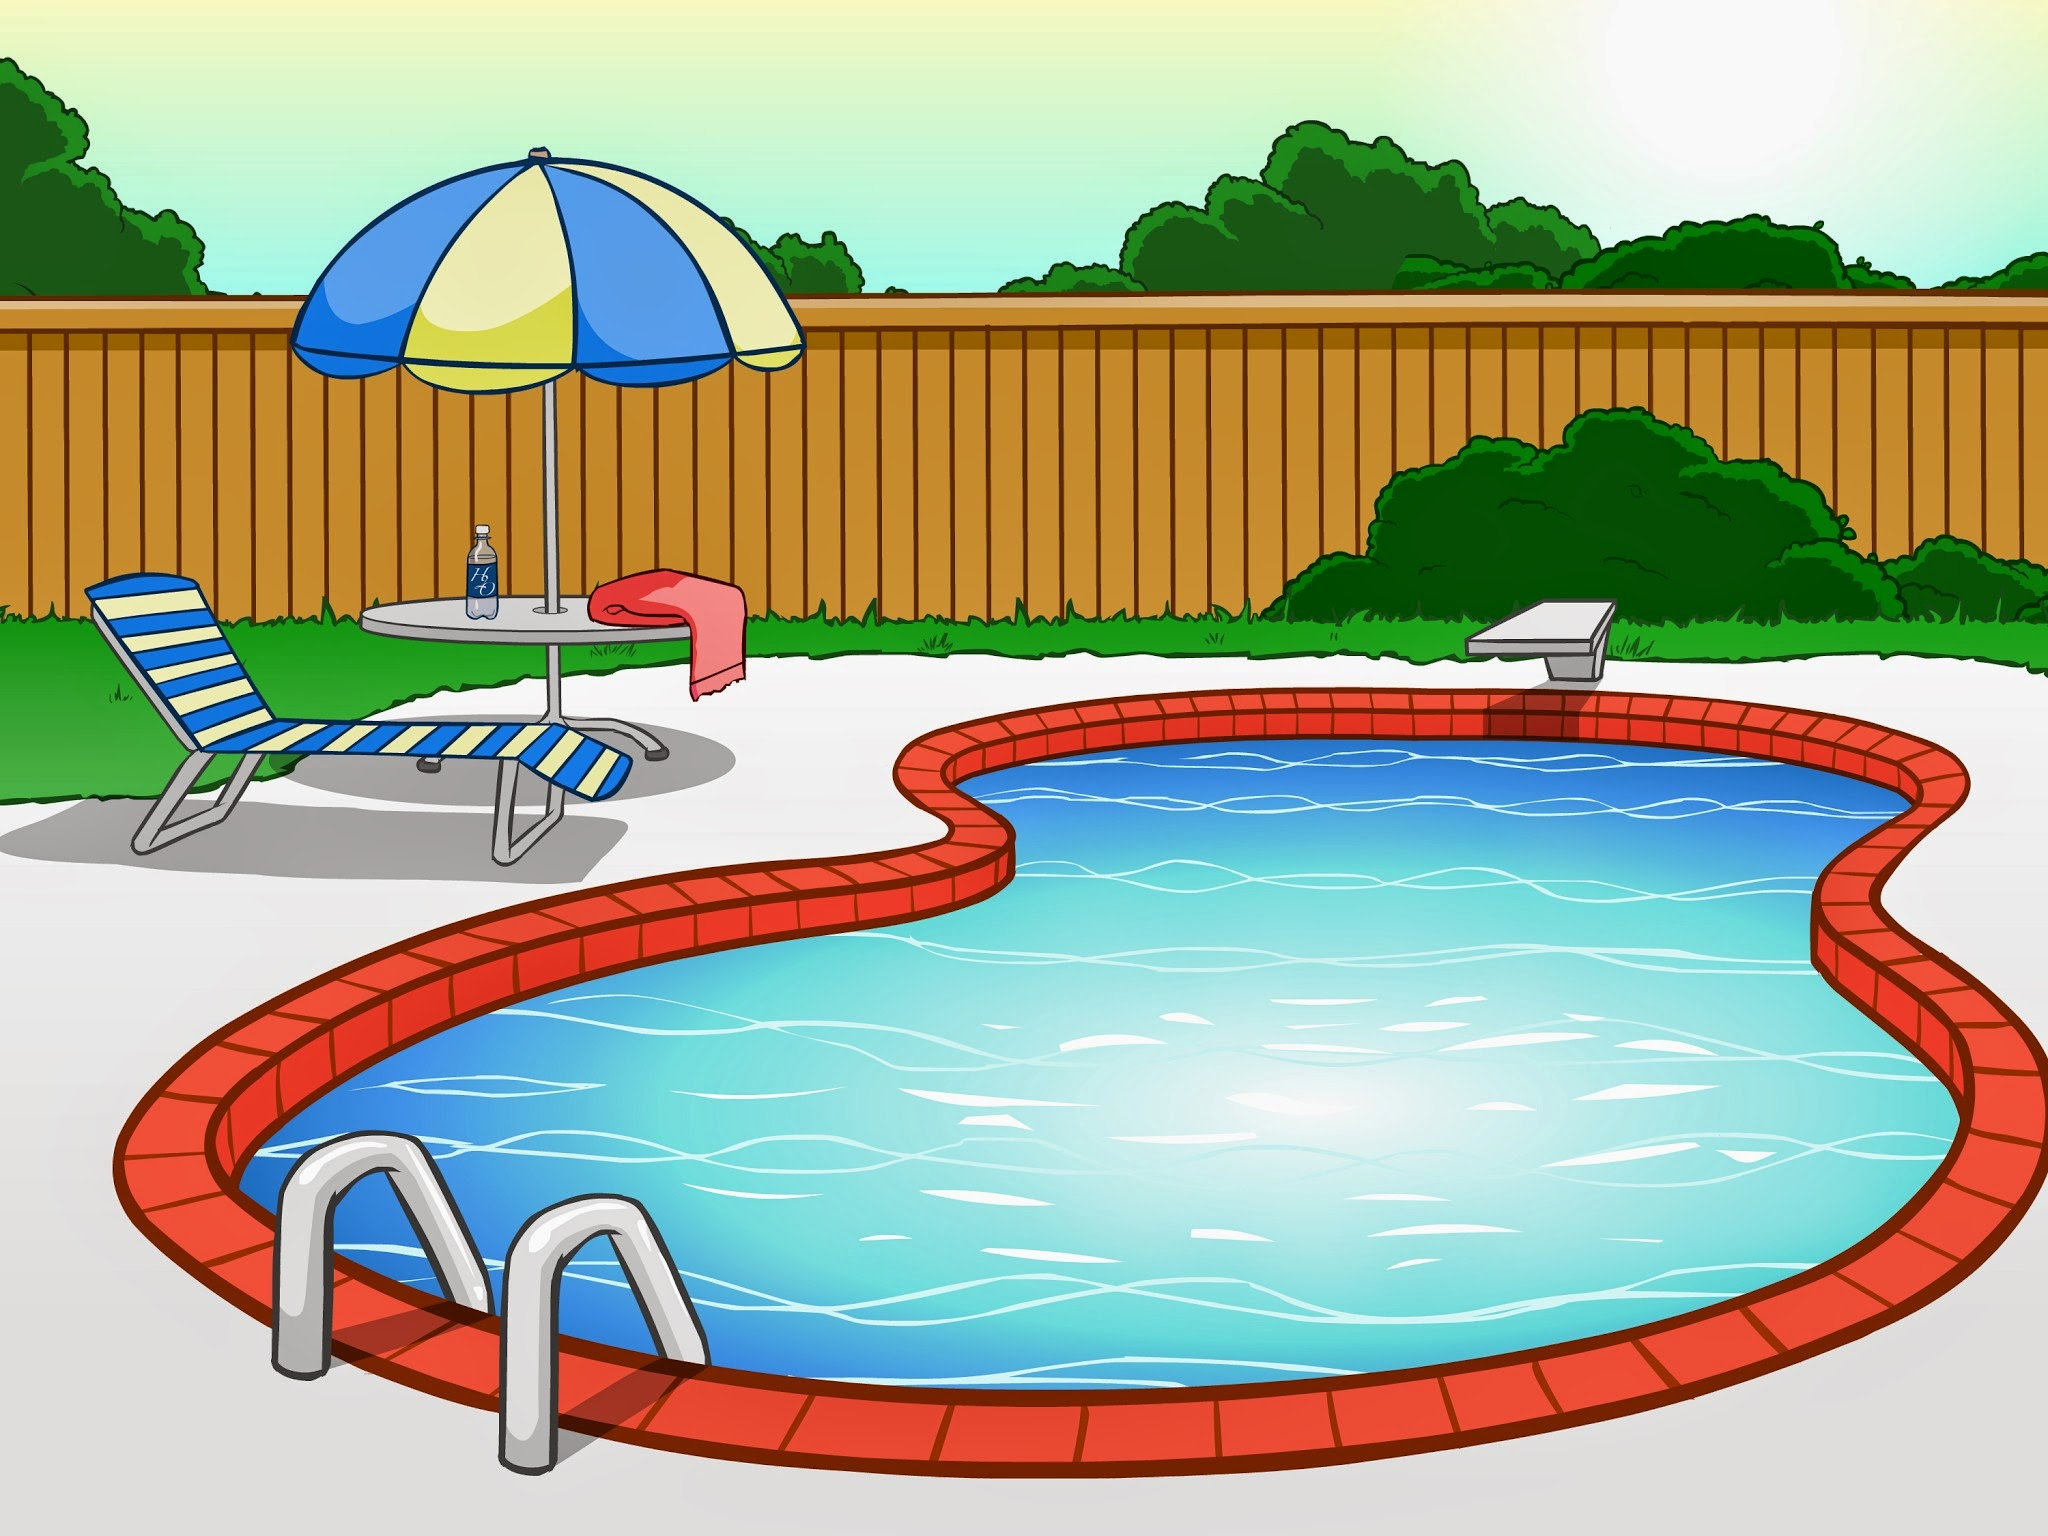 swimming pool cartoon images music search engine at